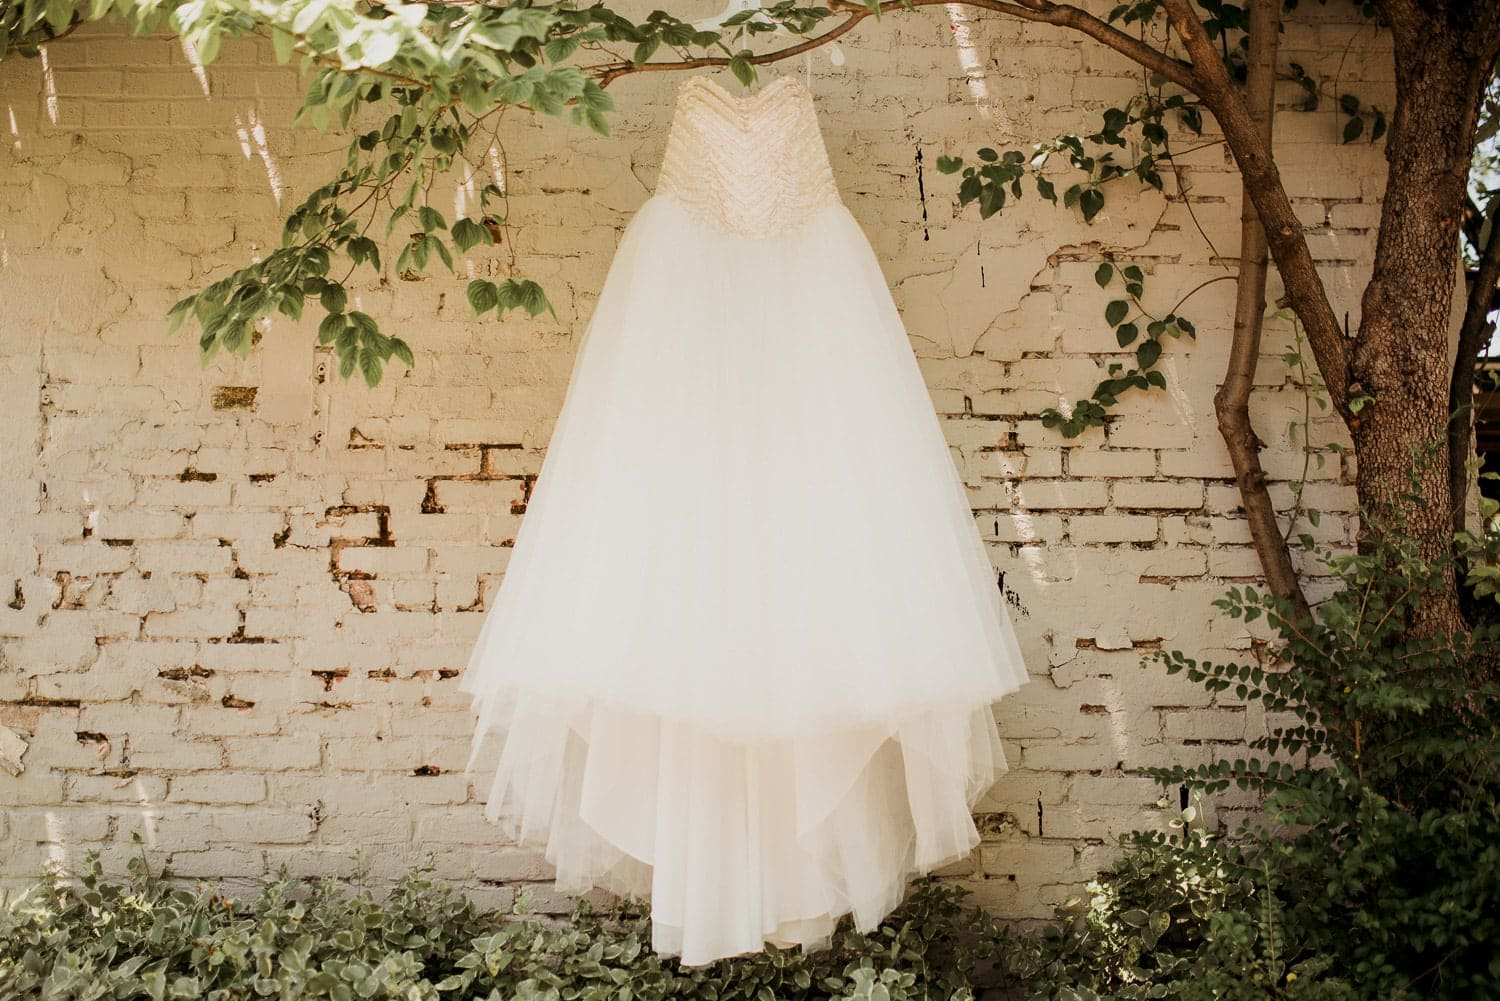 The brides dress hung from a tree branch agains a white brick wall